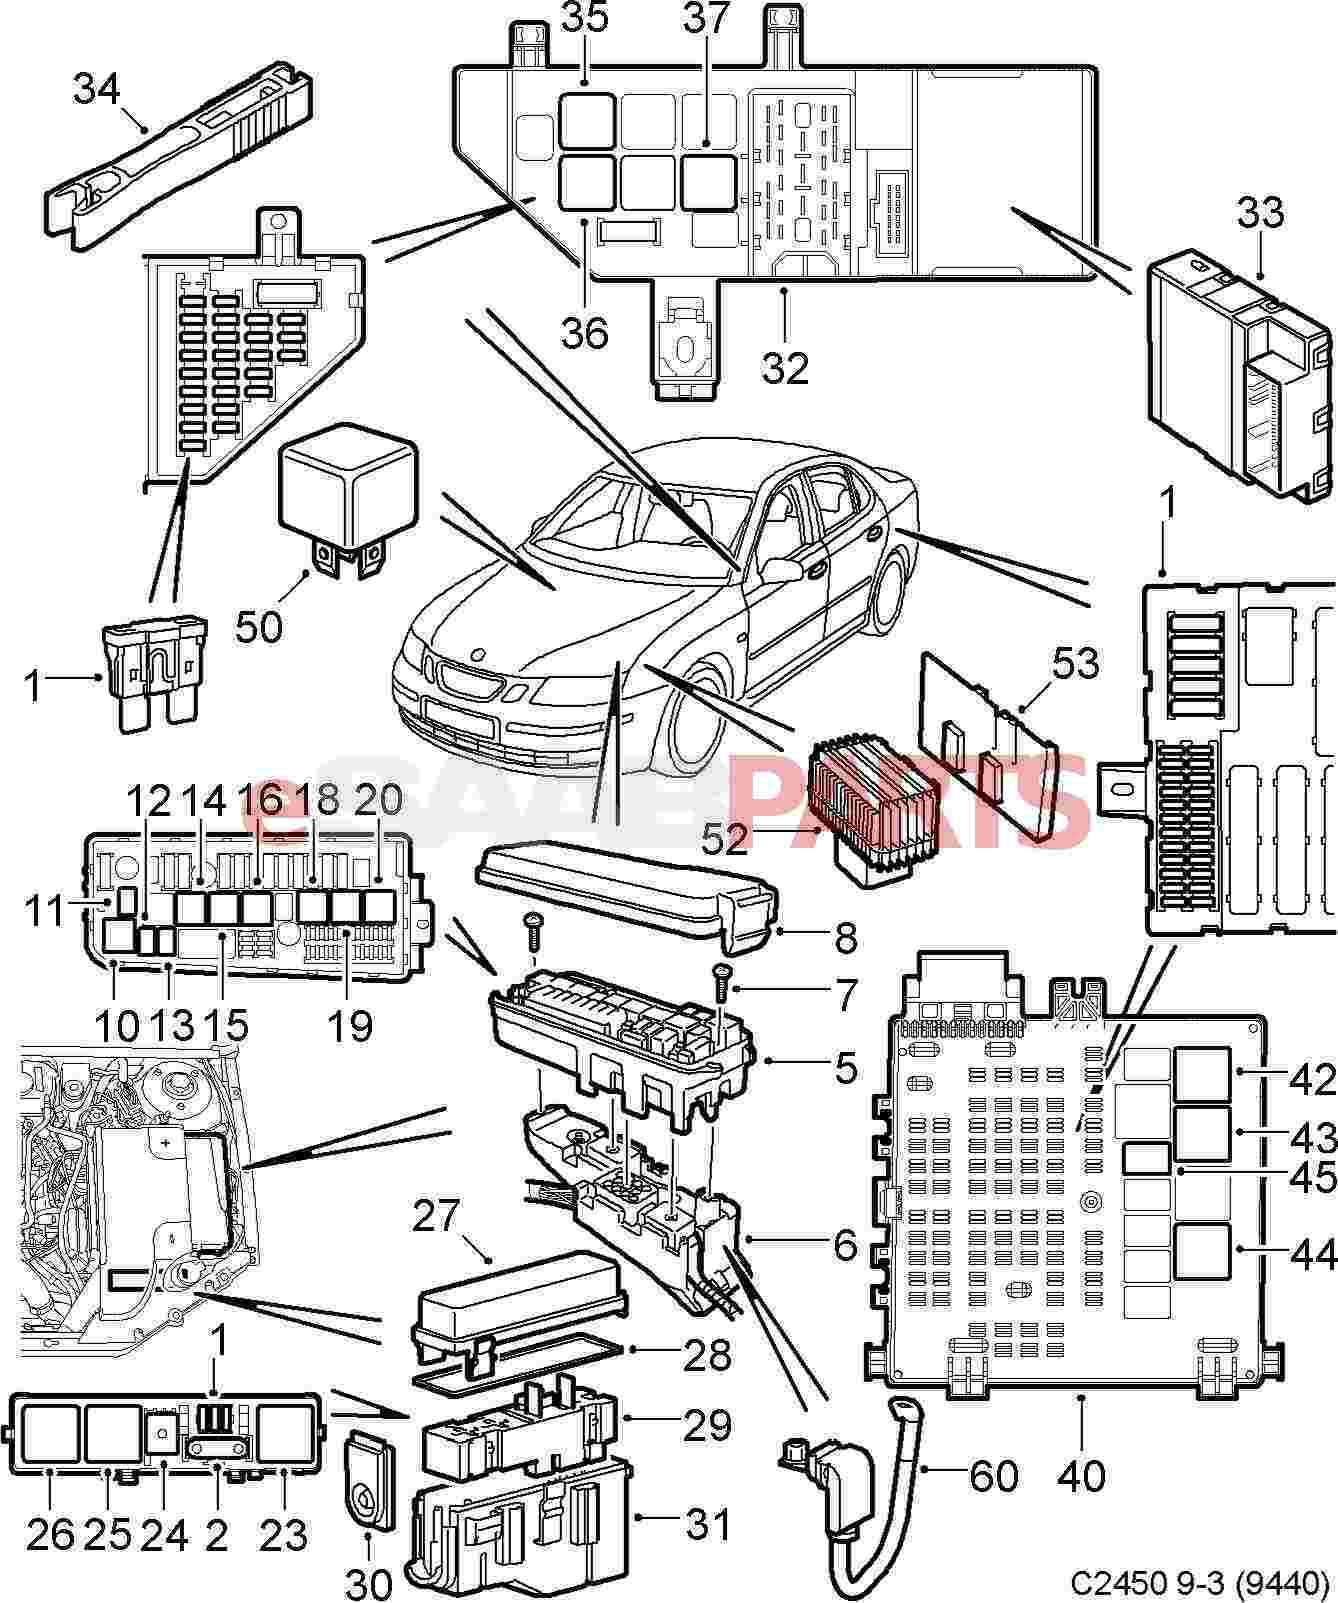 2003 saab 9 3 headlight wiring diagram